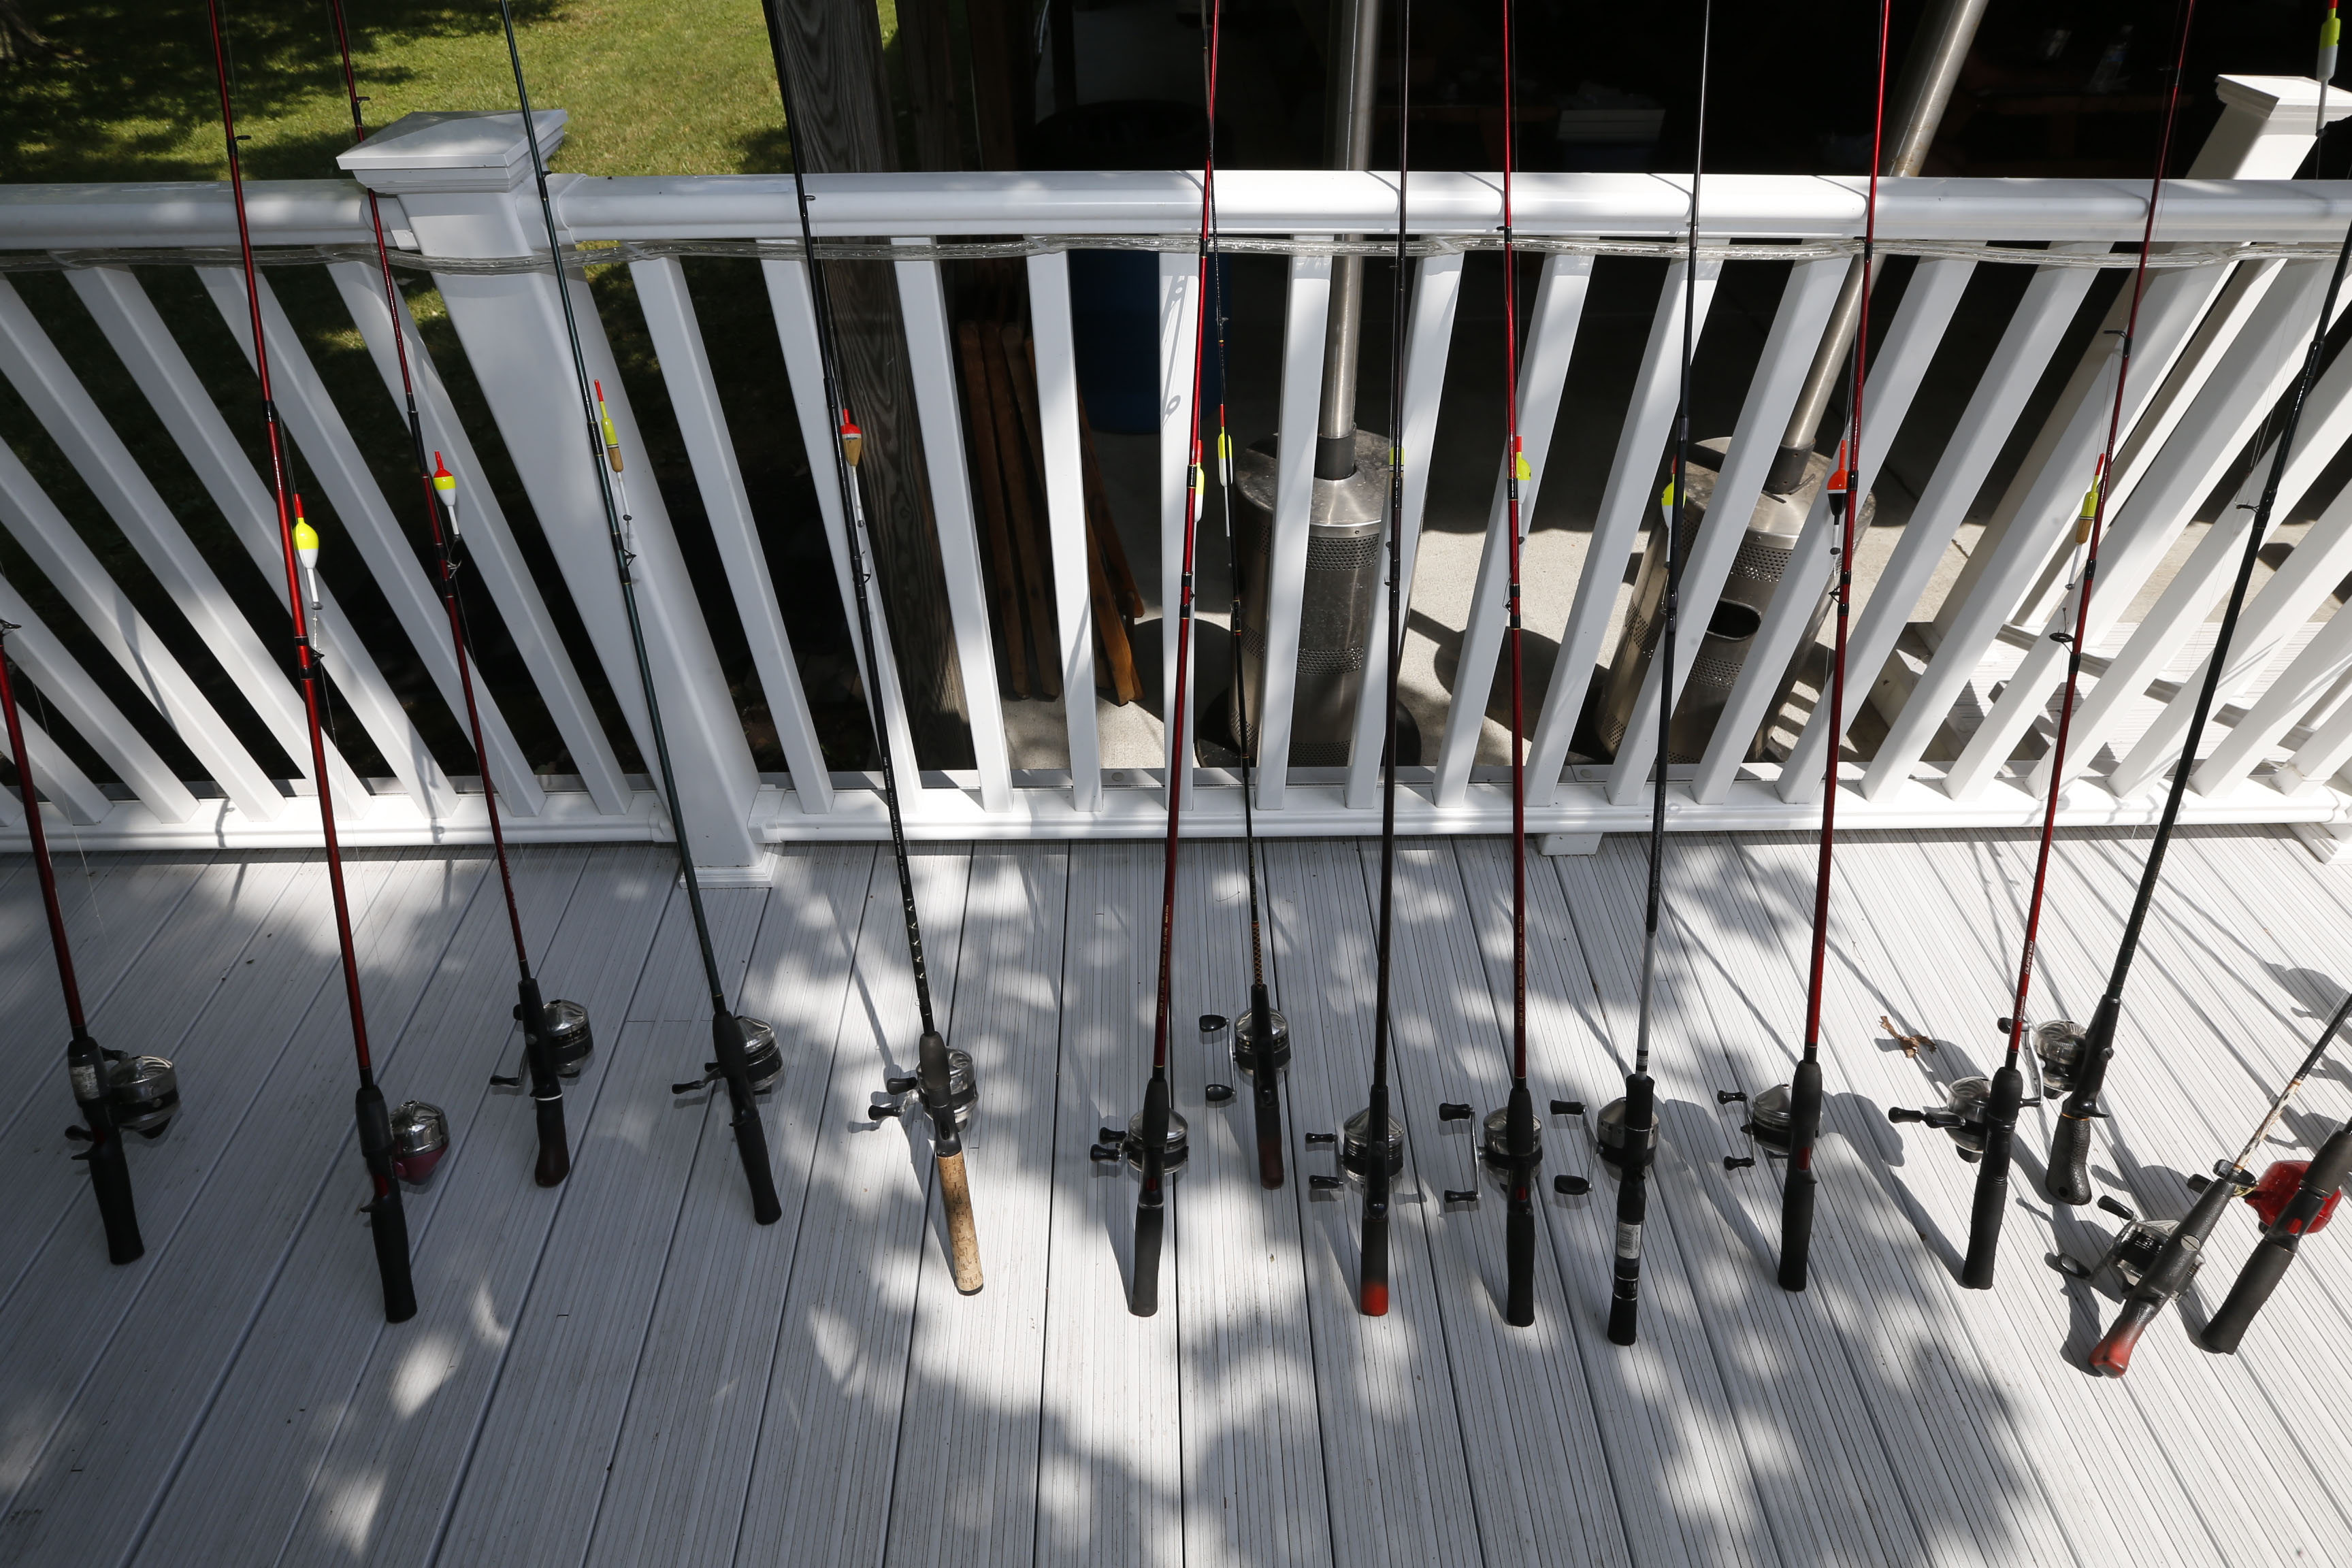 Fishing poles at the ready. (Robert Kirkham/Buffalo News file photo)